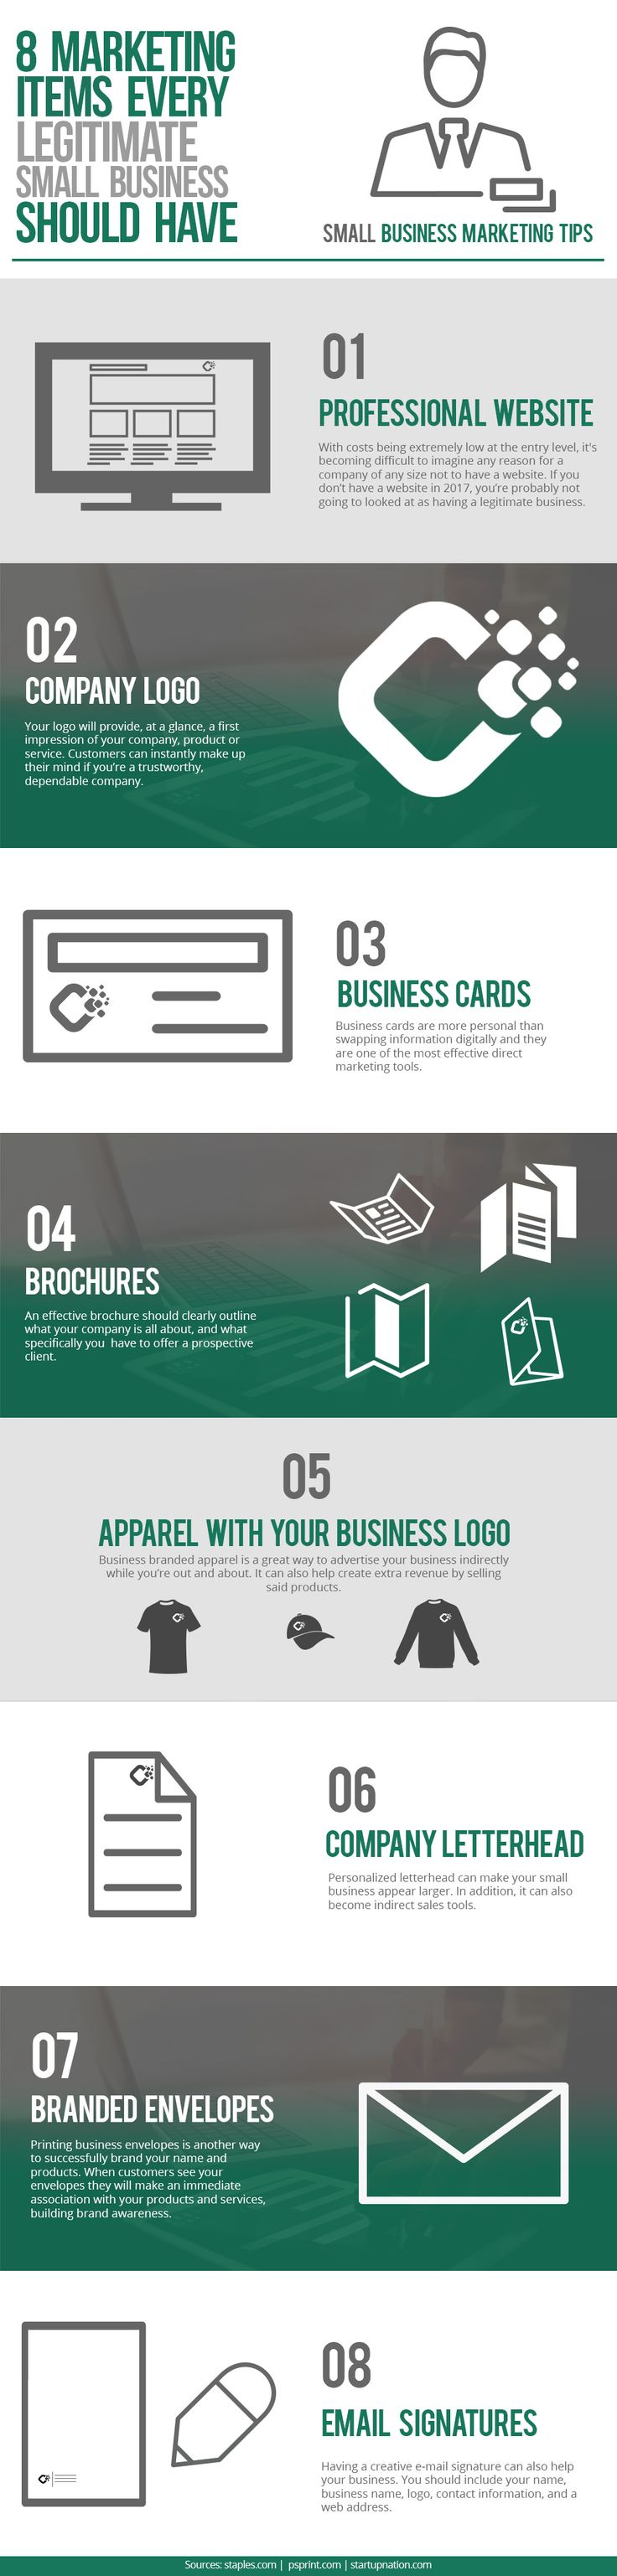 928 best marketing infographics images on pinterest 8 marketing items every legitimate small business should have infographic fandeluxe Gallery